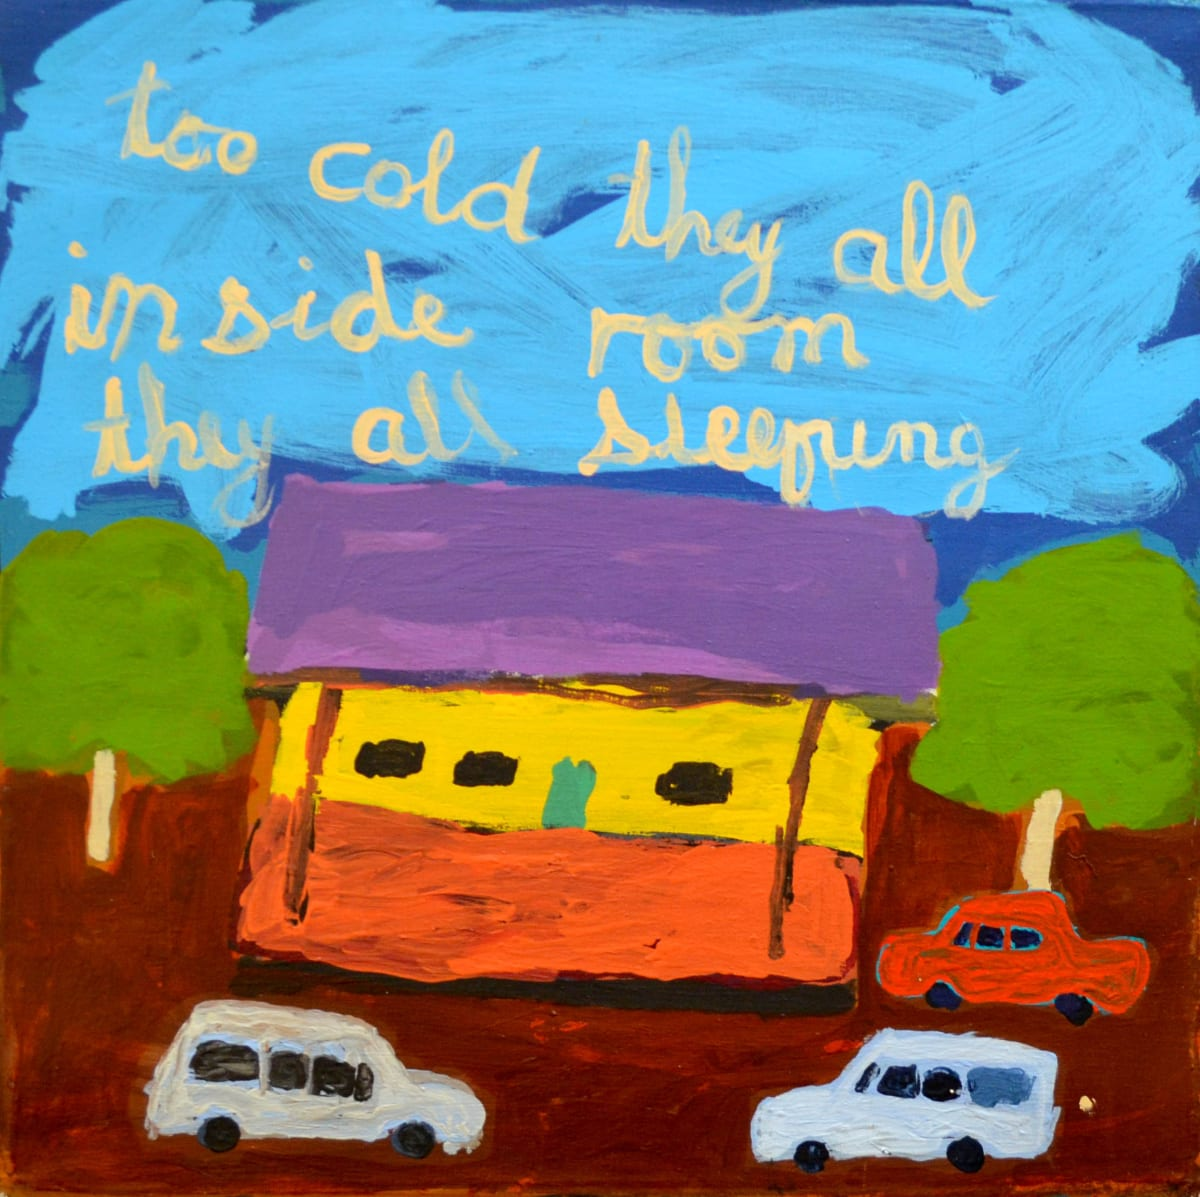 Sally M Mulda Too Cold, Abbotts Camp acrylic on linen 56 x 56 cm